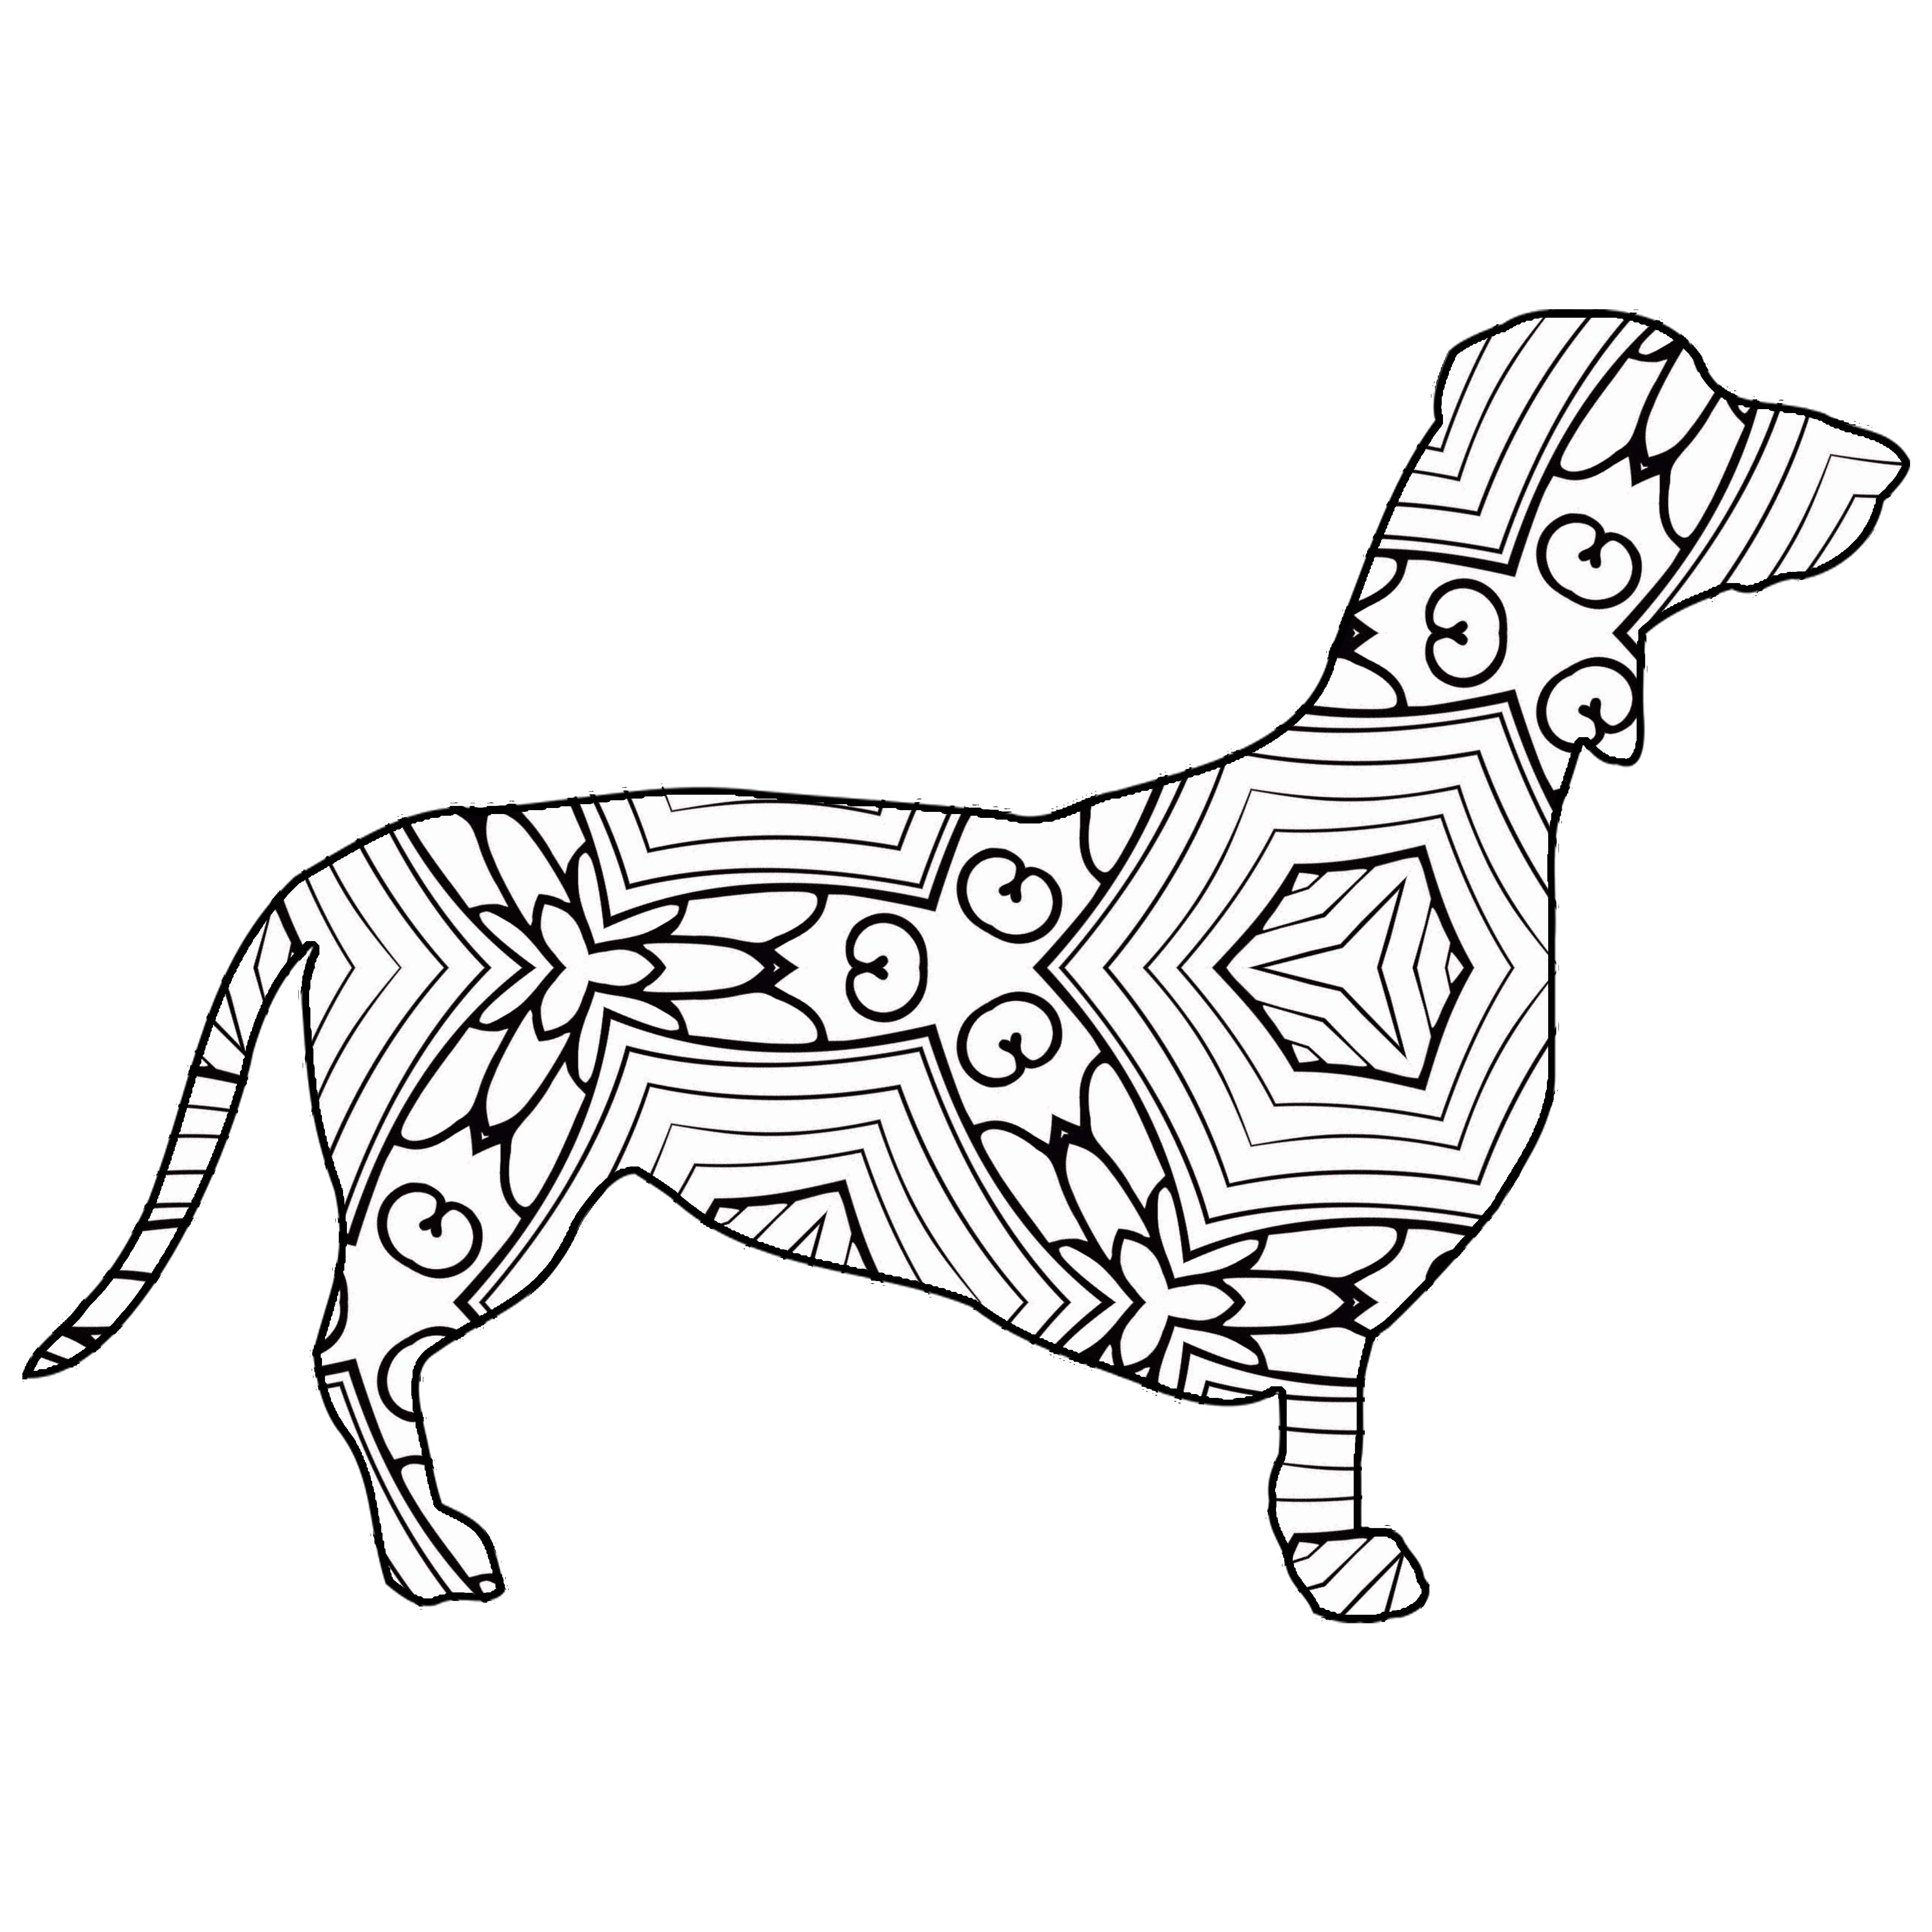 Dachshund Coloring Pages At Getdrawings Com Free For Personal Use